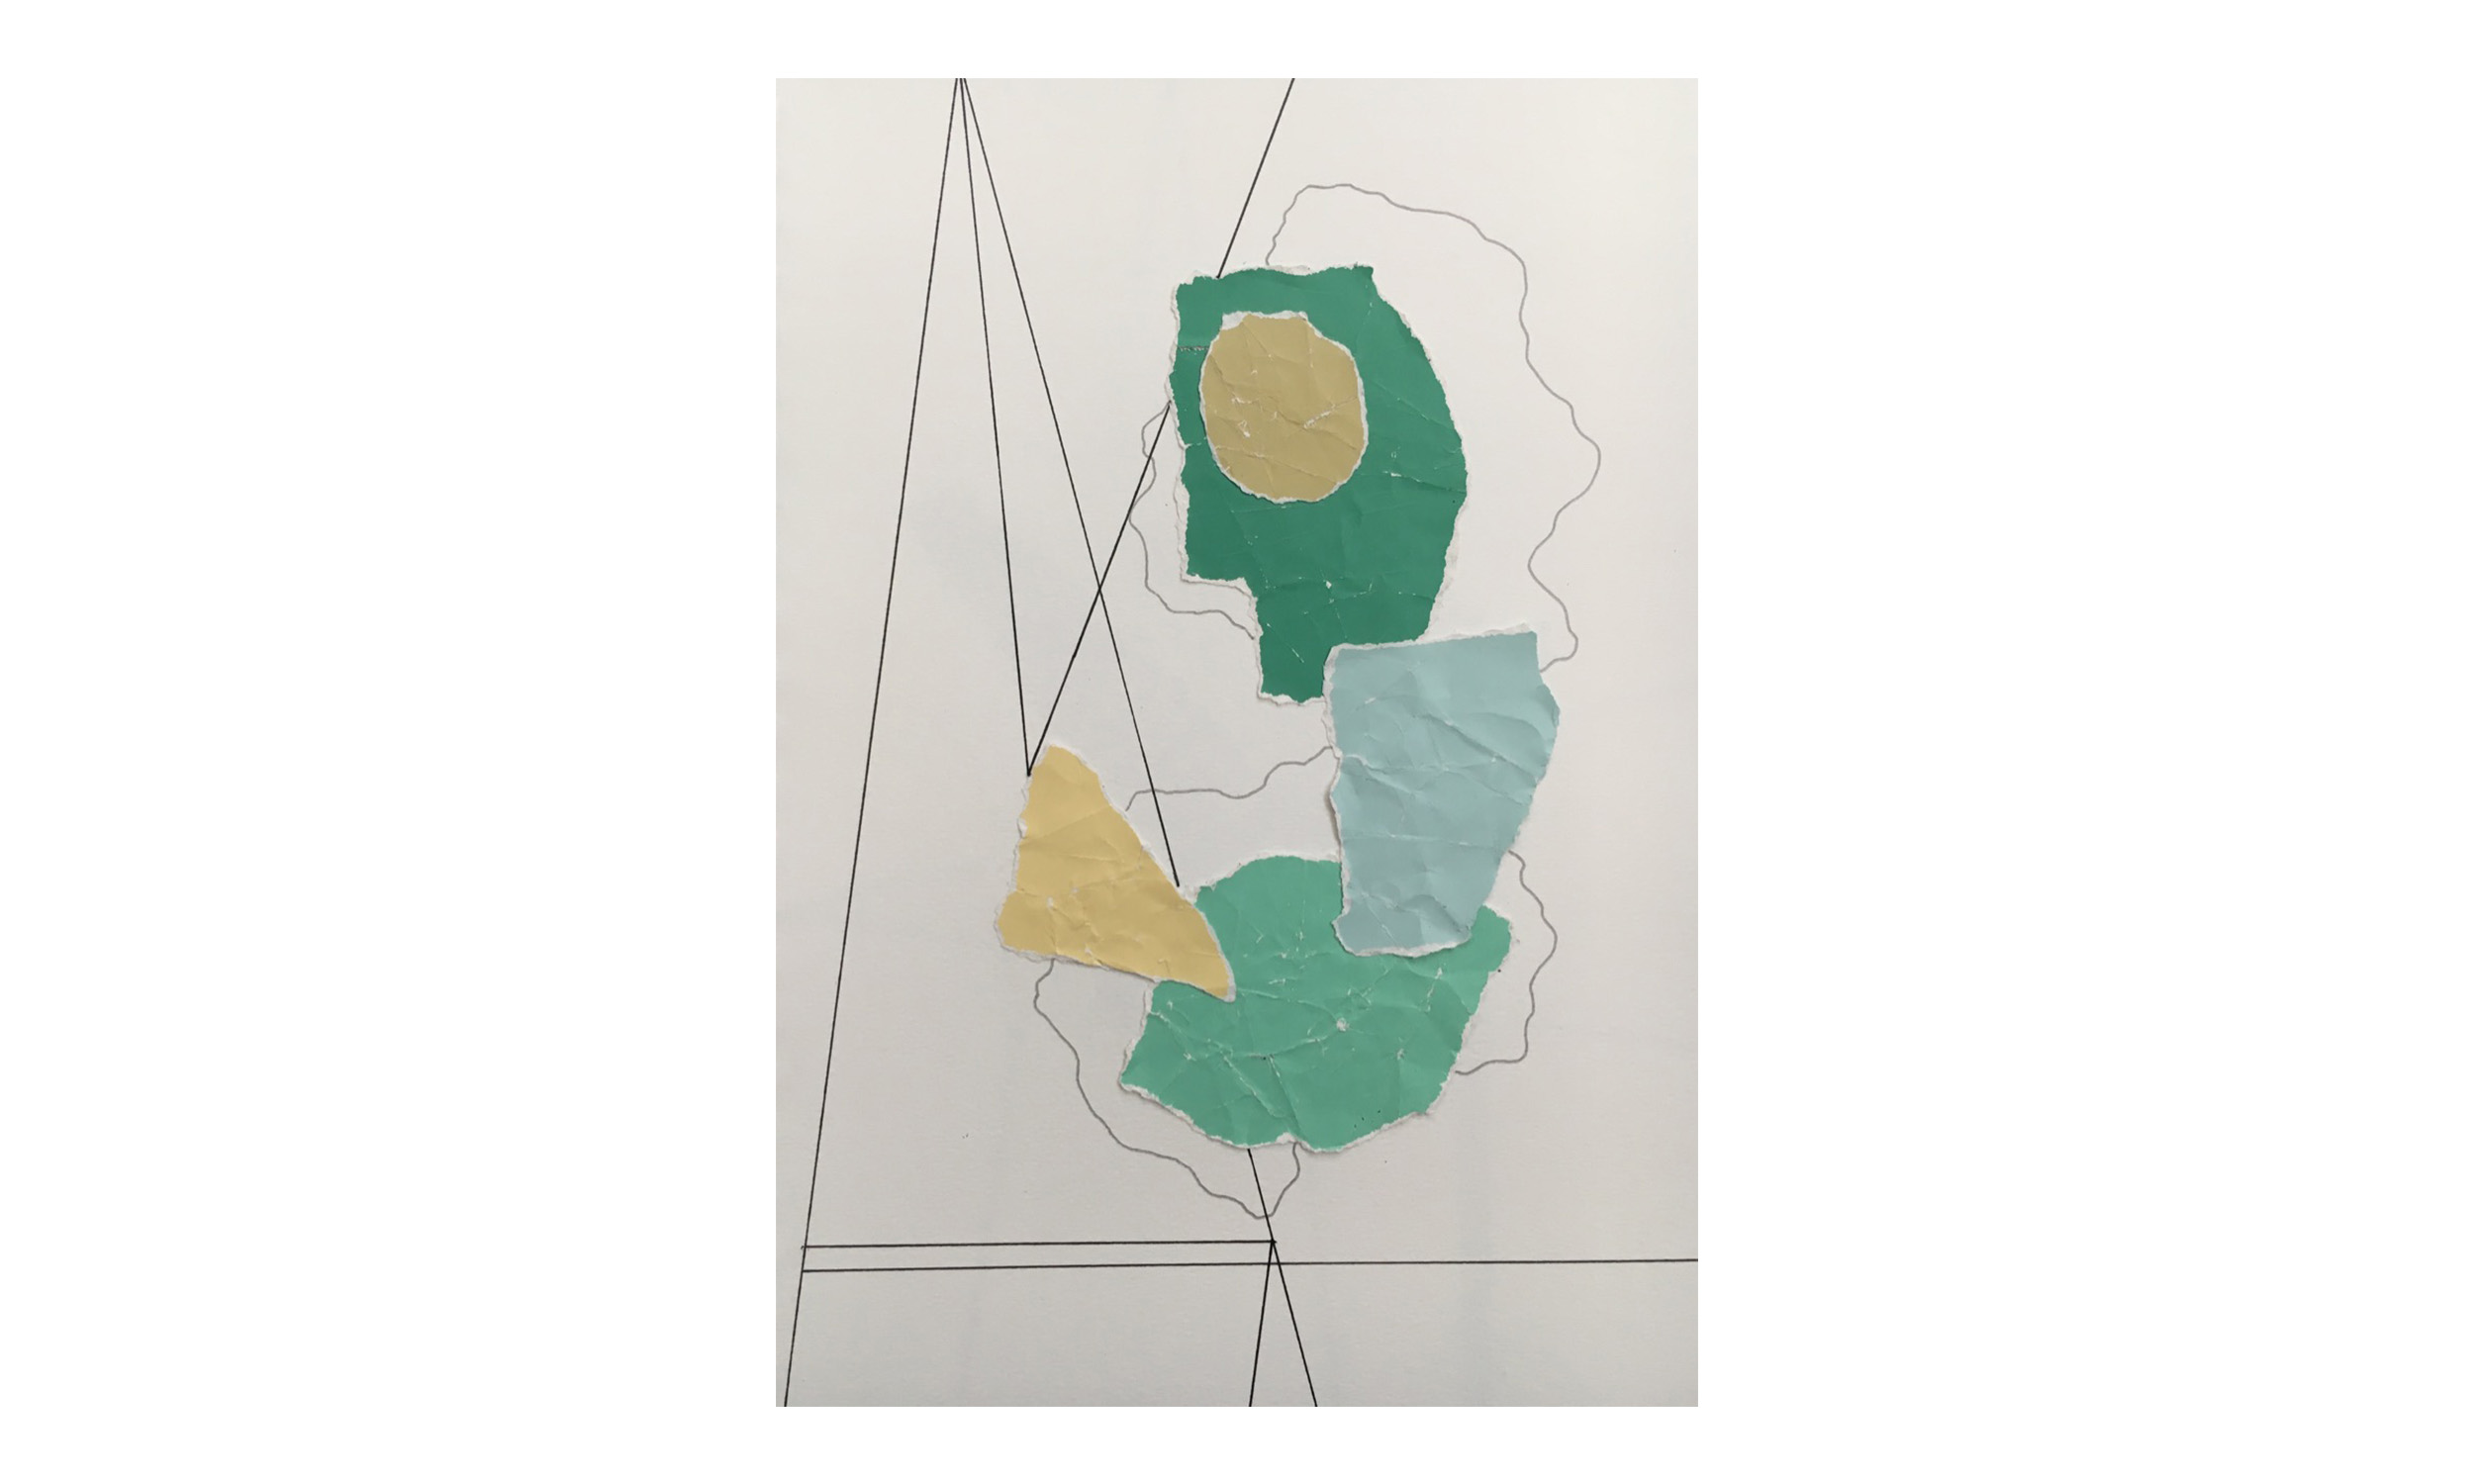 Imaginary Maps 5 , paint chips on paper, pen, pencil, 9 x 12 inches, unframed, $200    Contact us for purchase